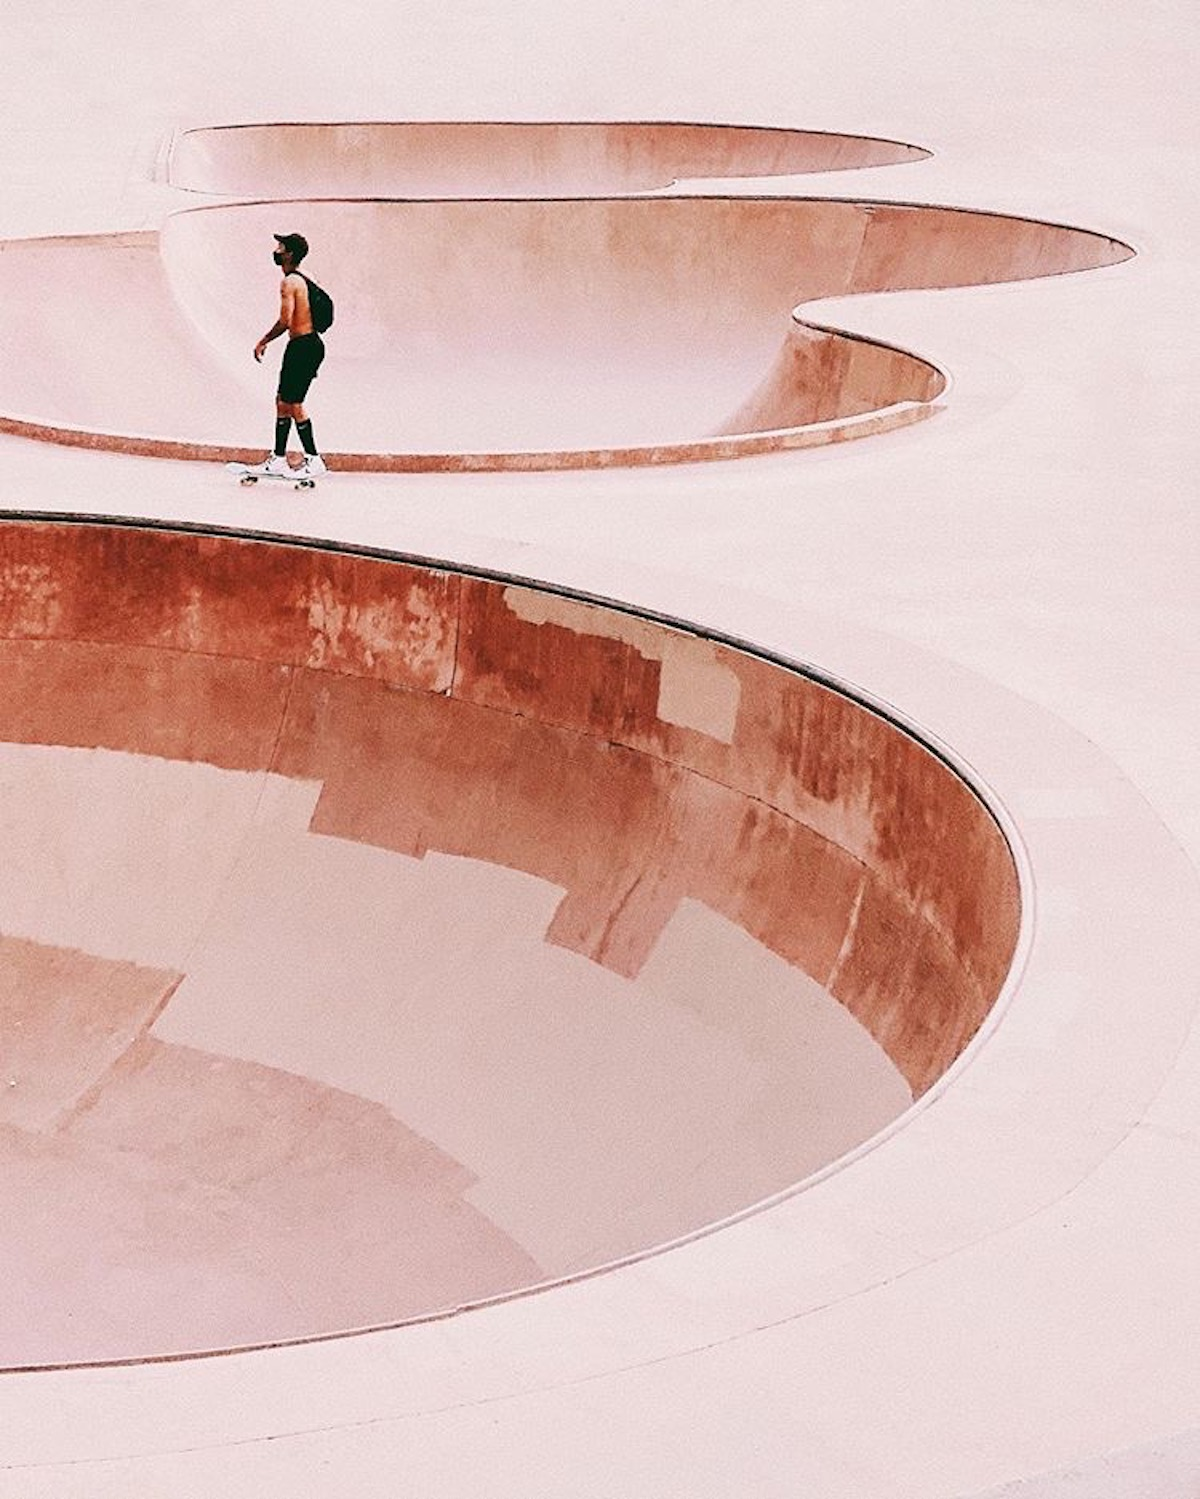 A skateboarder riding between two skate bowls with a red filter on the shot